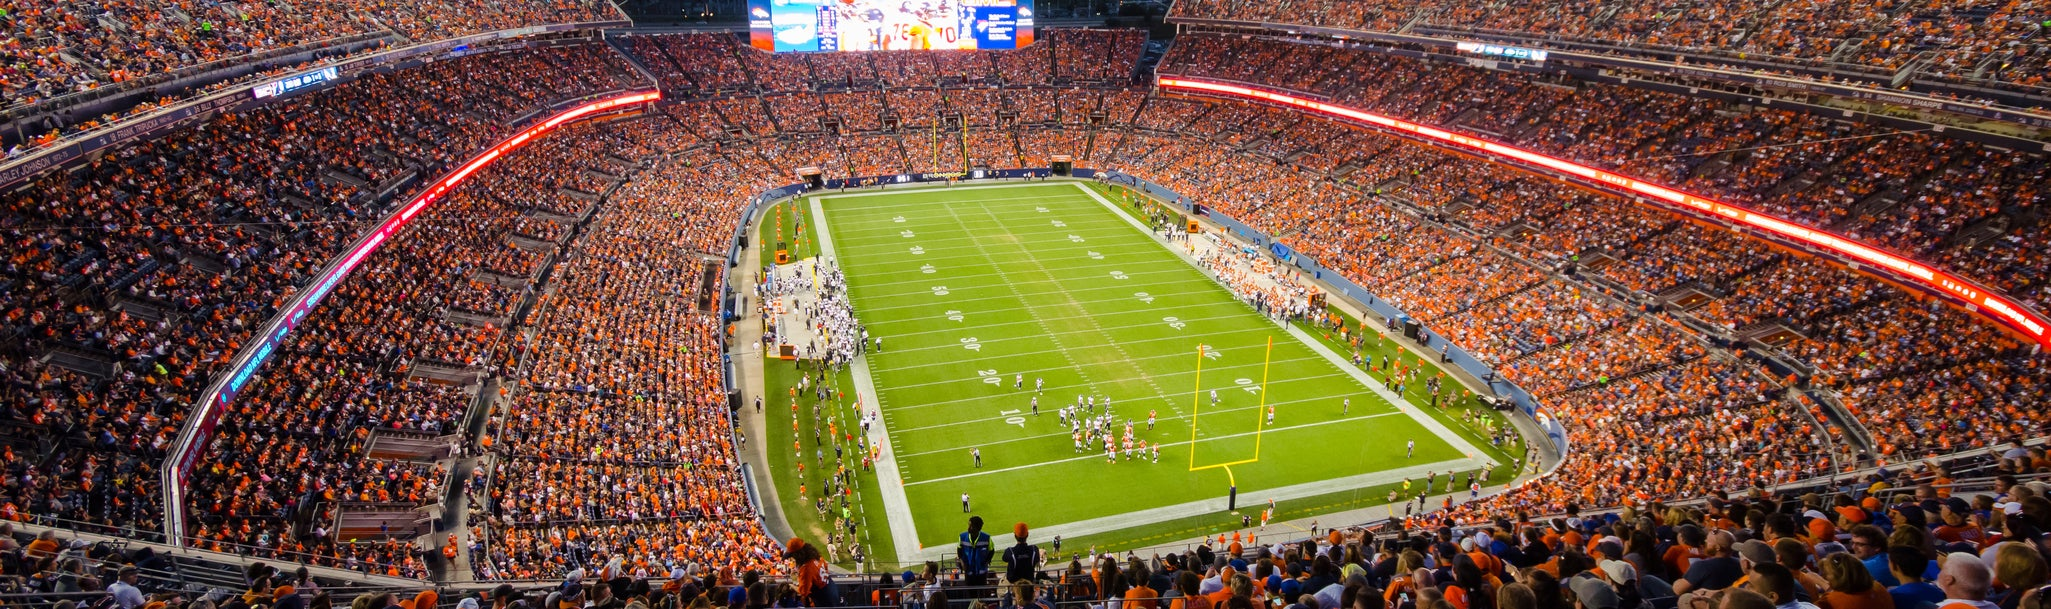 Seat view from Upper Level End Zone